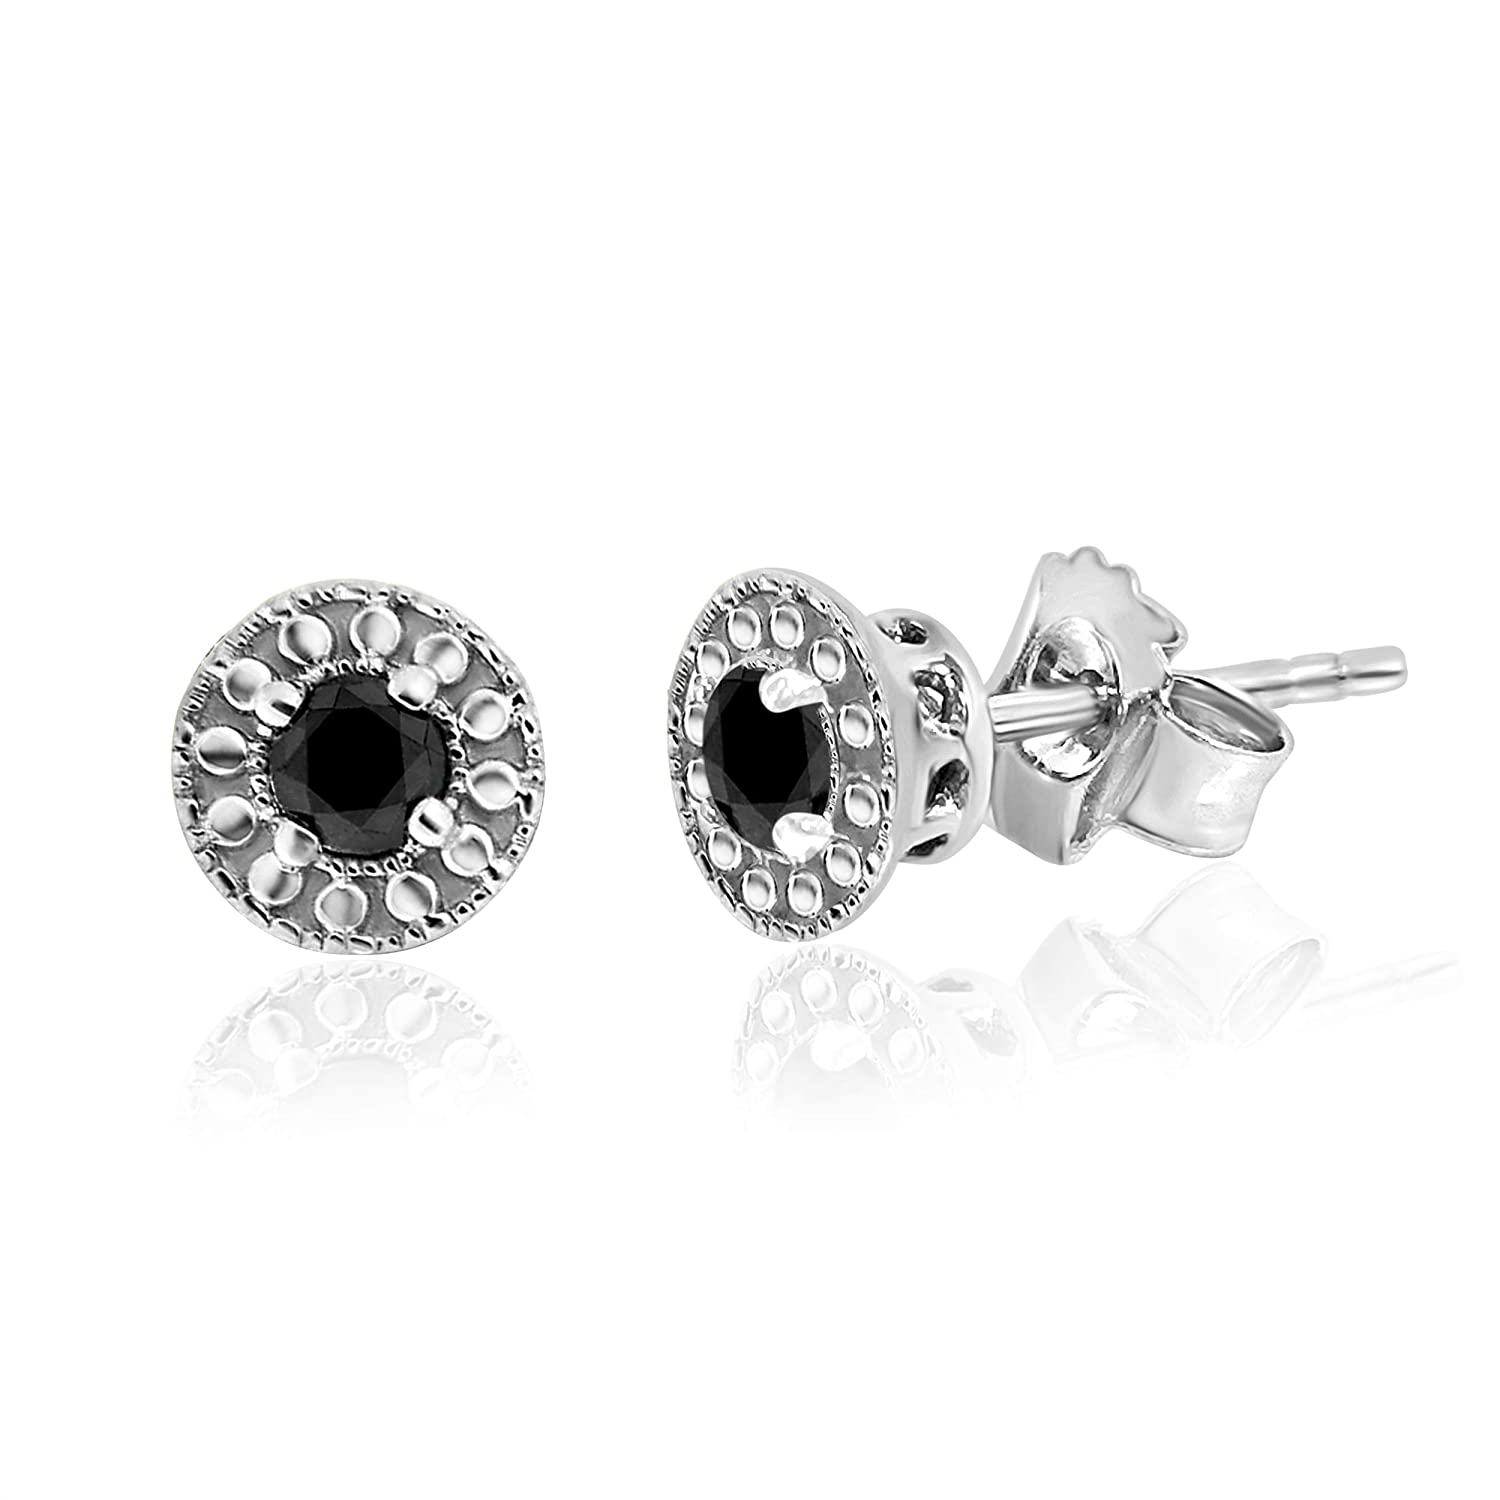 Black Stud Halo Round Earrings in Sterling Silver 0.25 Carat Weight